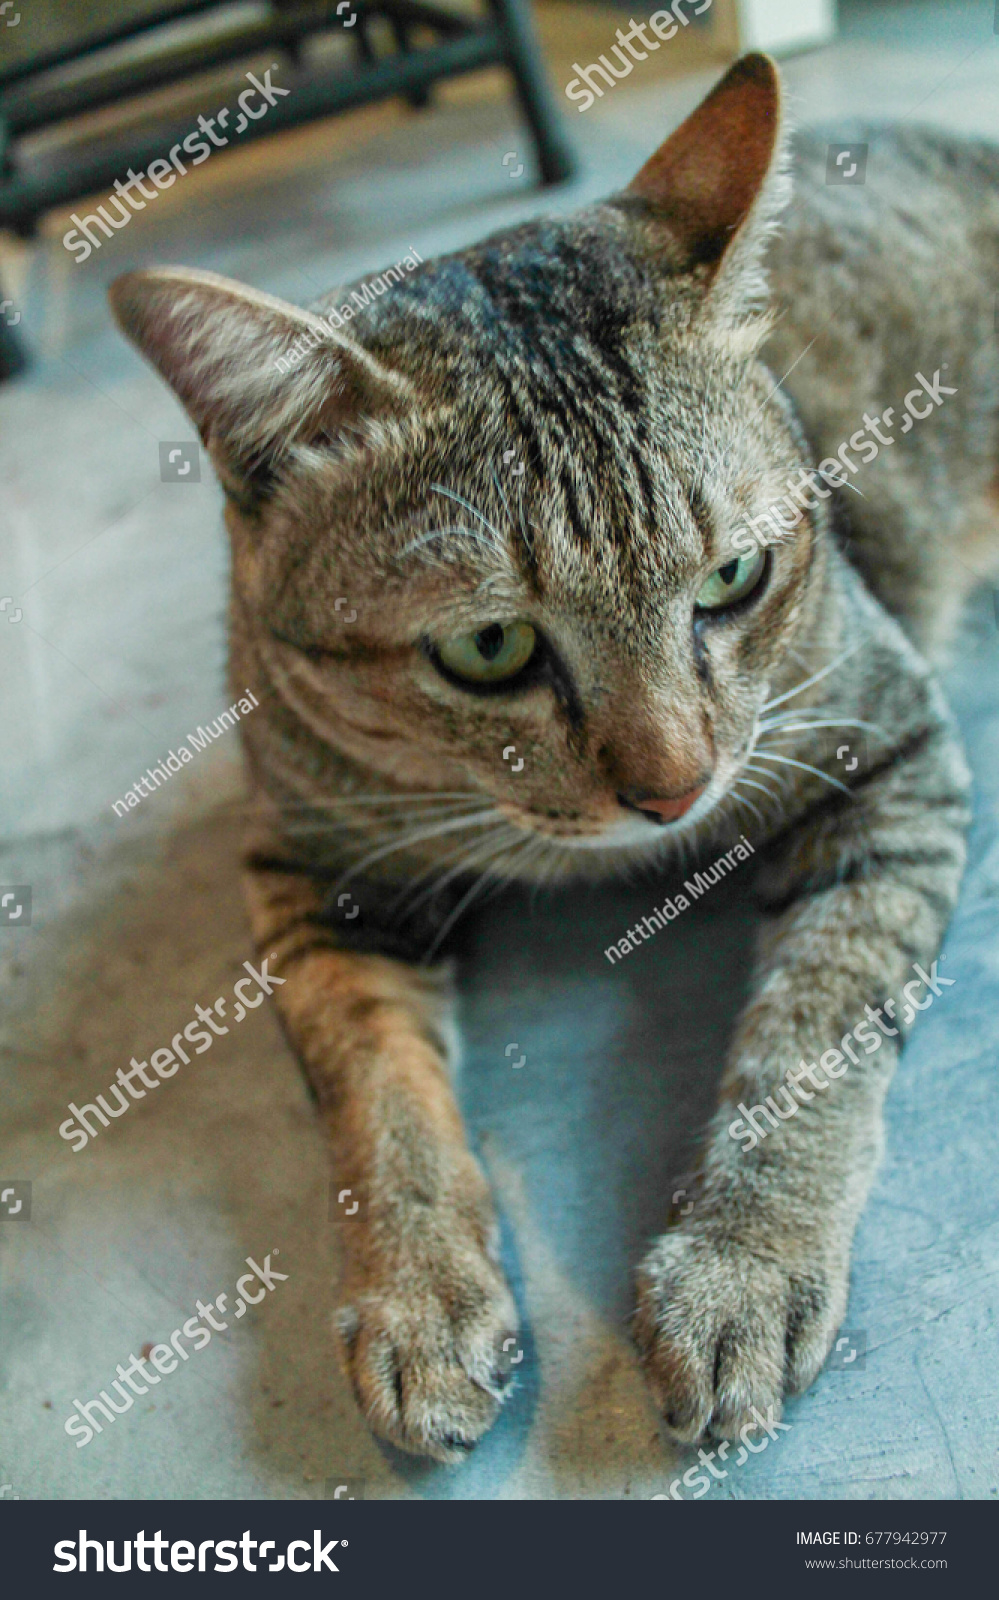 Cowardly Lion Cat Stock Photo Edit Now 677942977 Shutterstock The